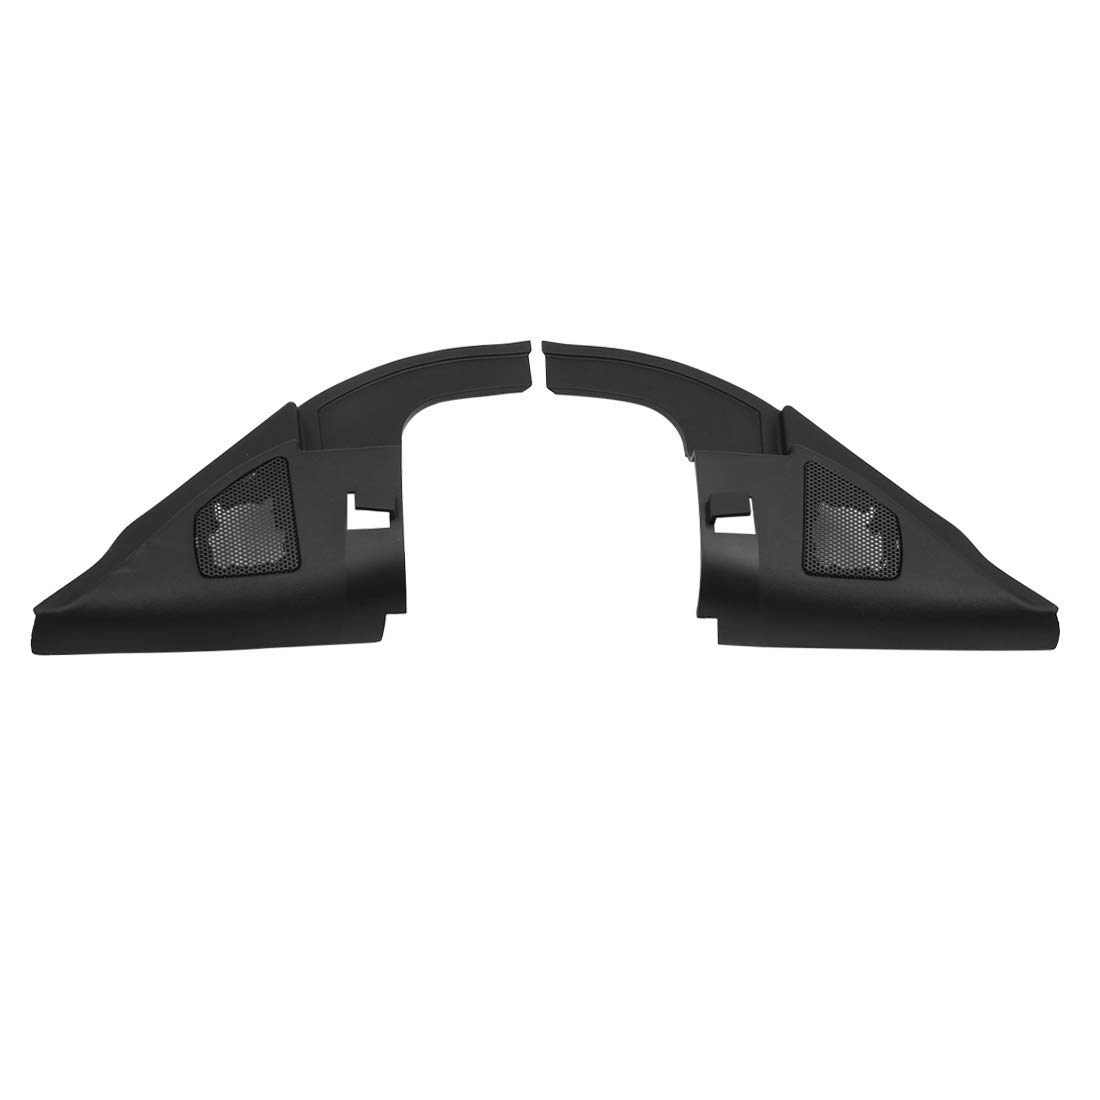 uxcell Pair Black Car Speaker Trim Cover Tweeter Protector for 2009 Nissan Sylphy